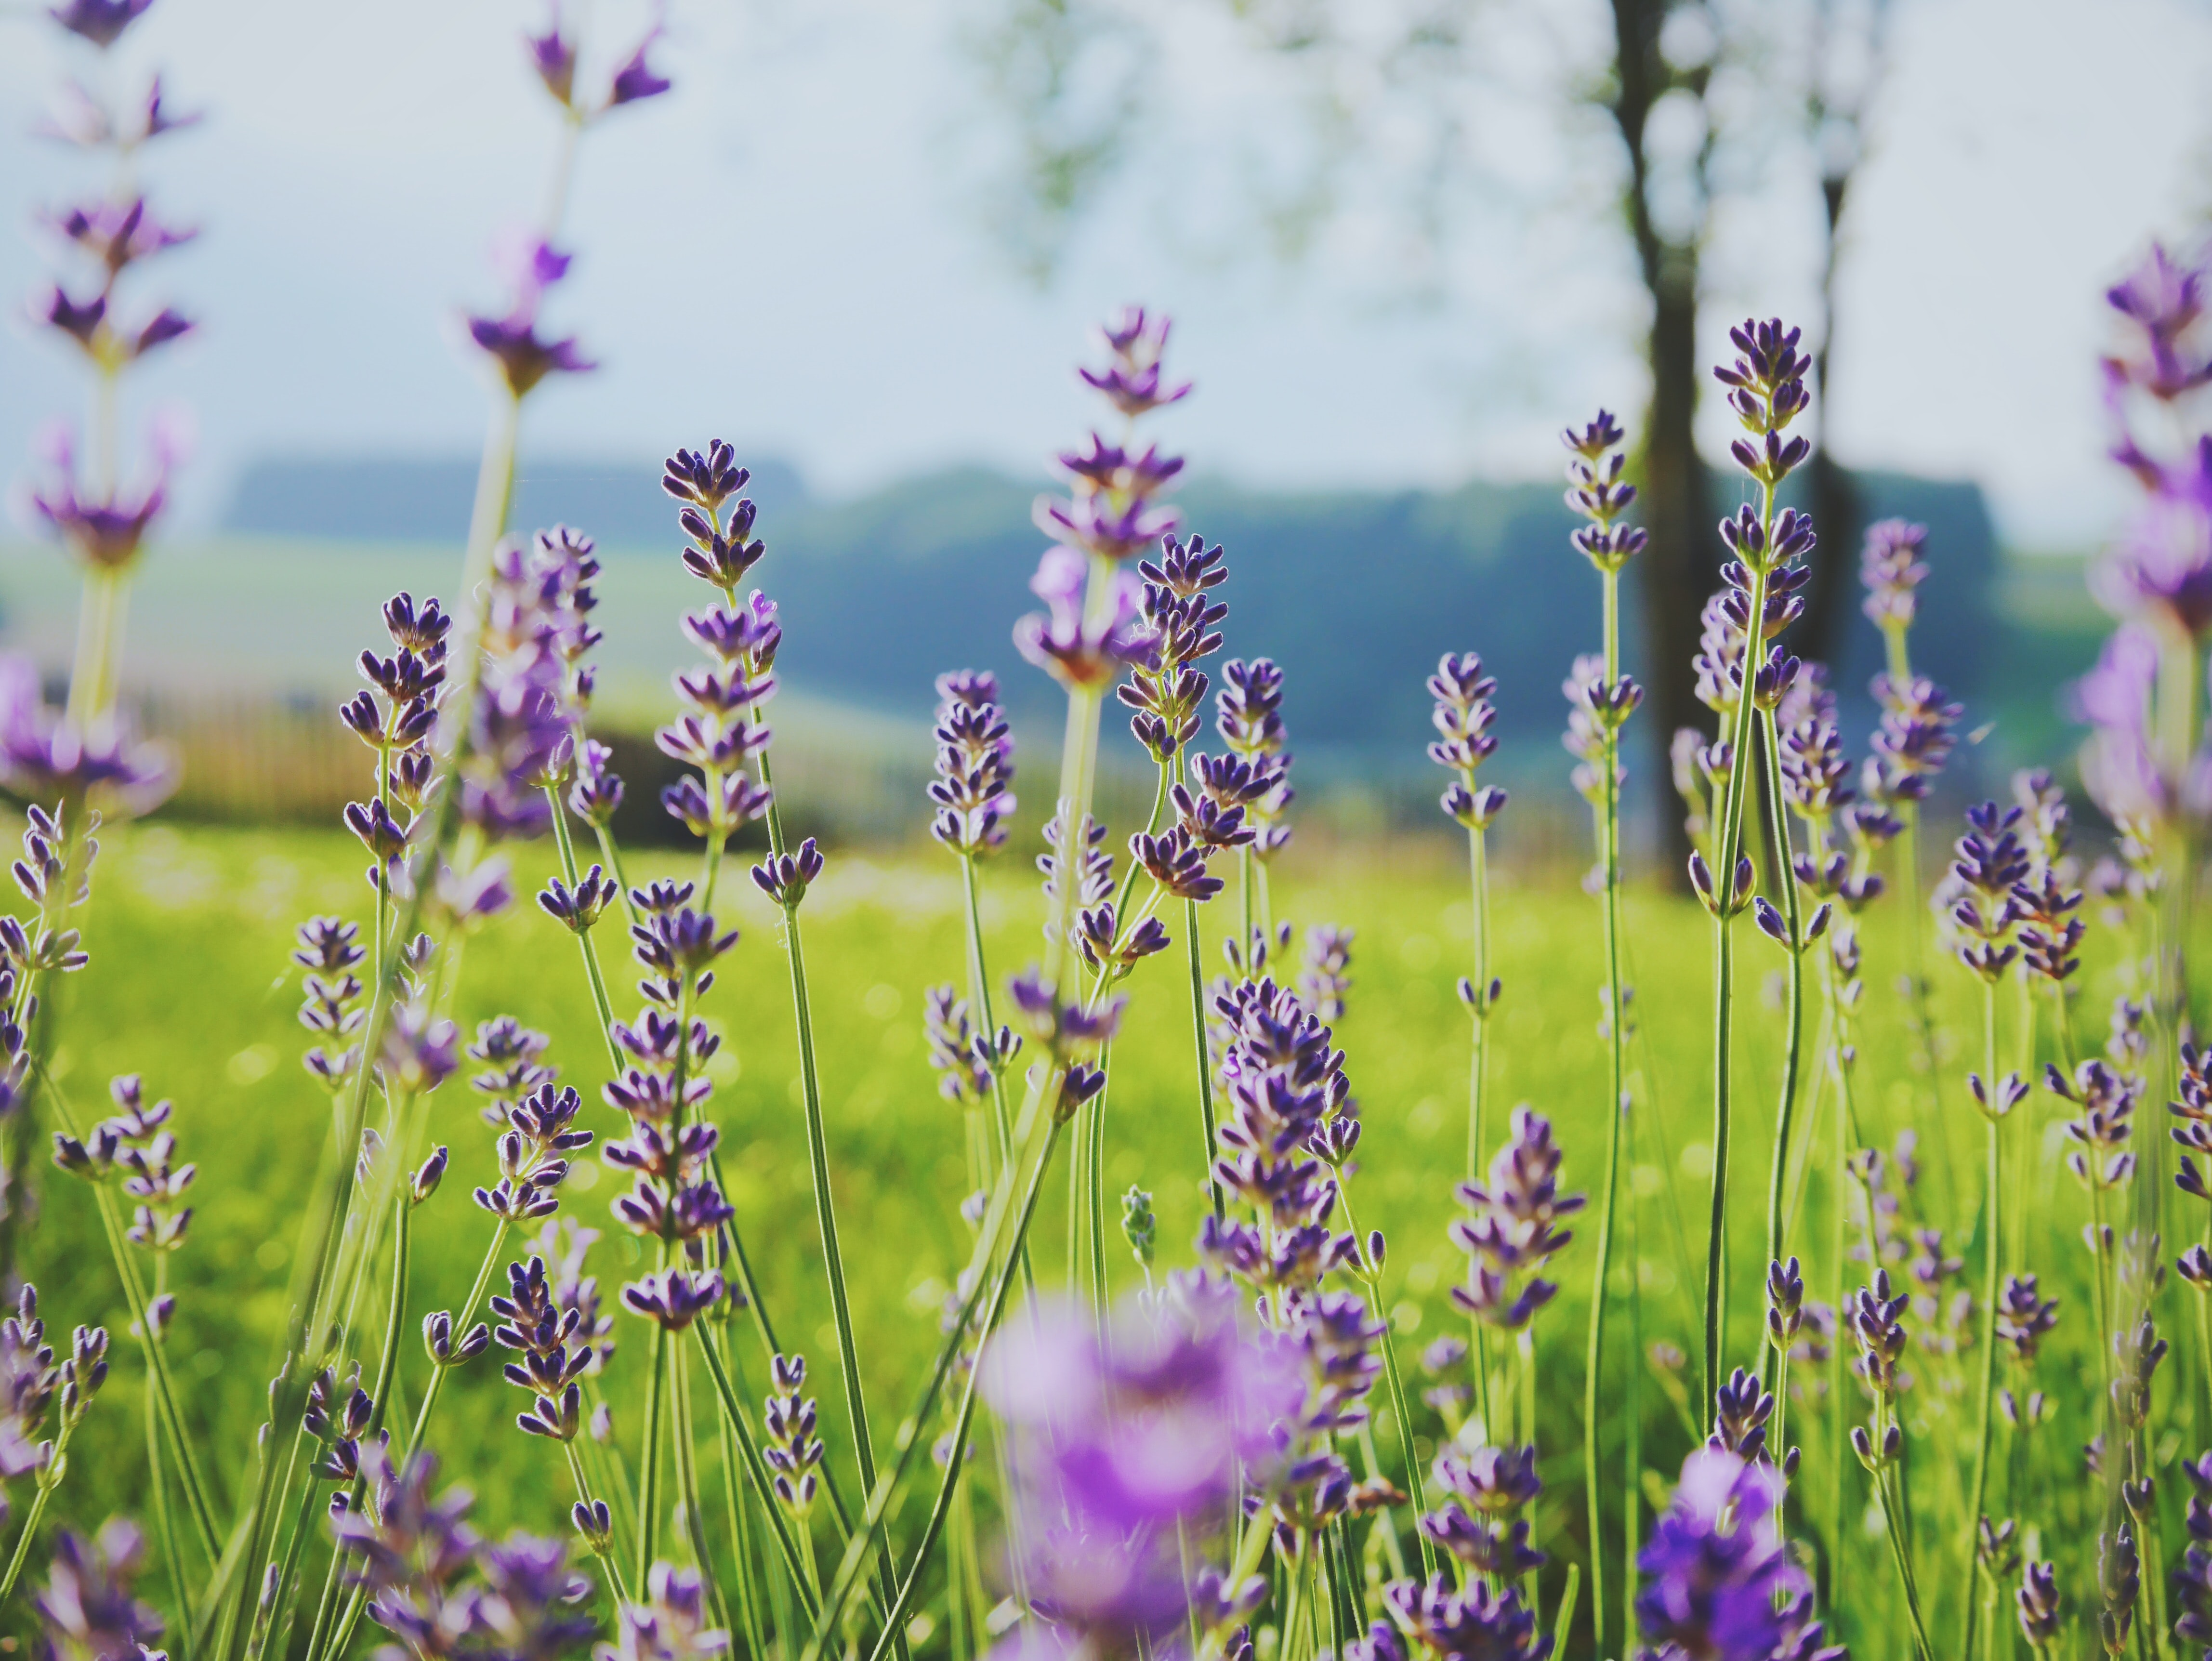 A low shot of tall lavender flowers in a green field